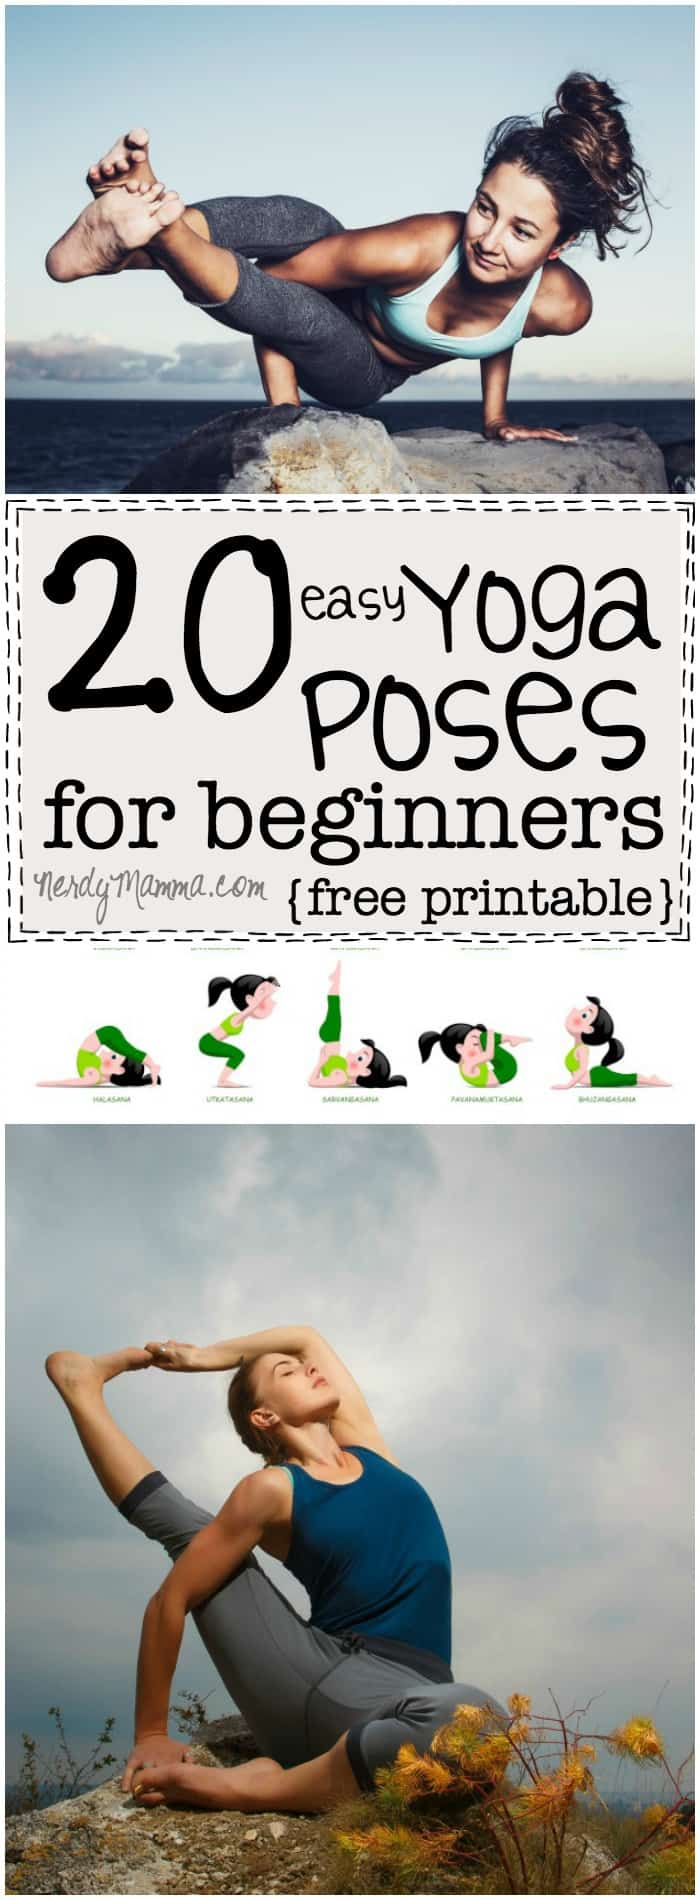 20 Free 12 Granny Square Crochet Patterns: 20 Easy Yoga Poses For Beginners With A Free Printable